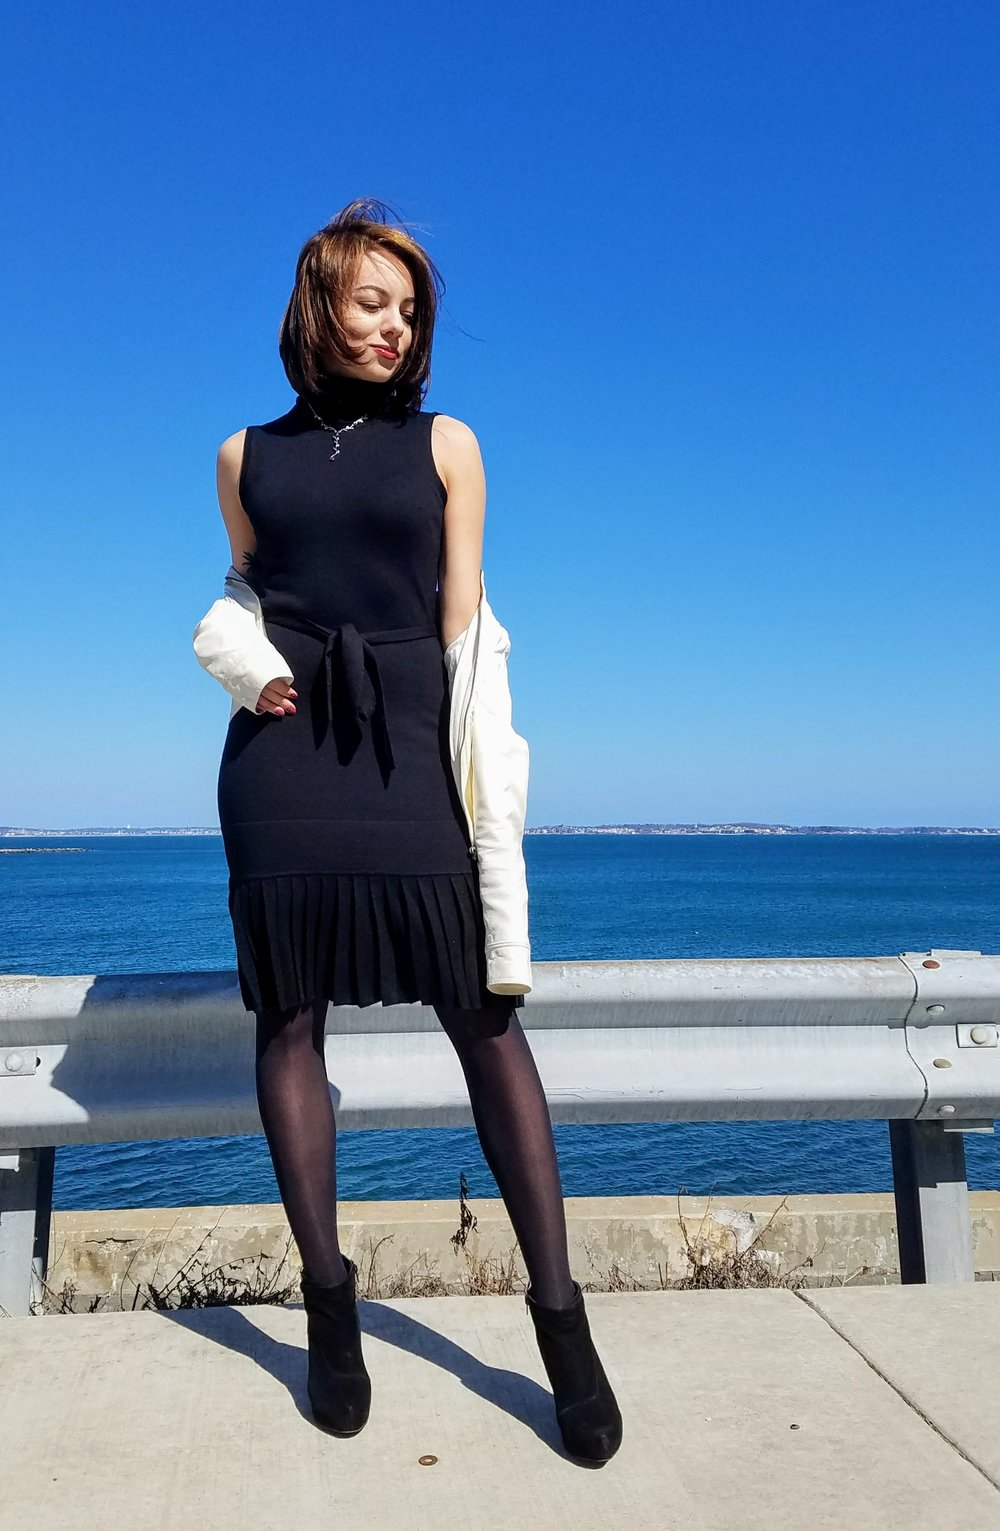 Black turtleneck dress, black ankle boots, white leather jacket.